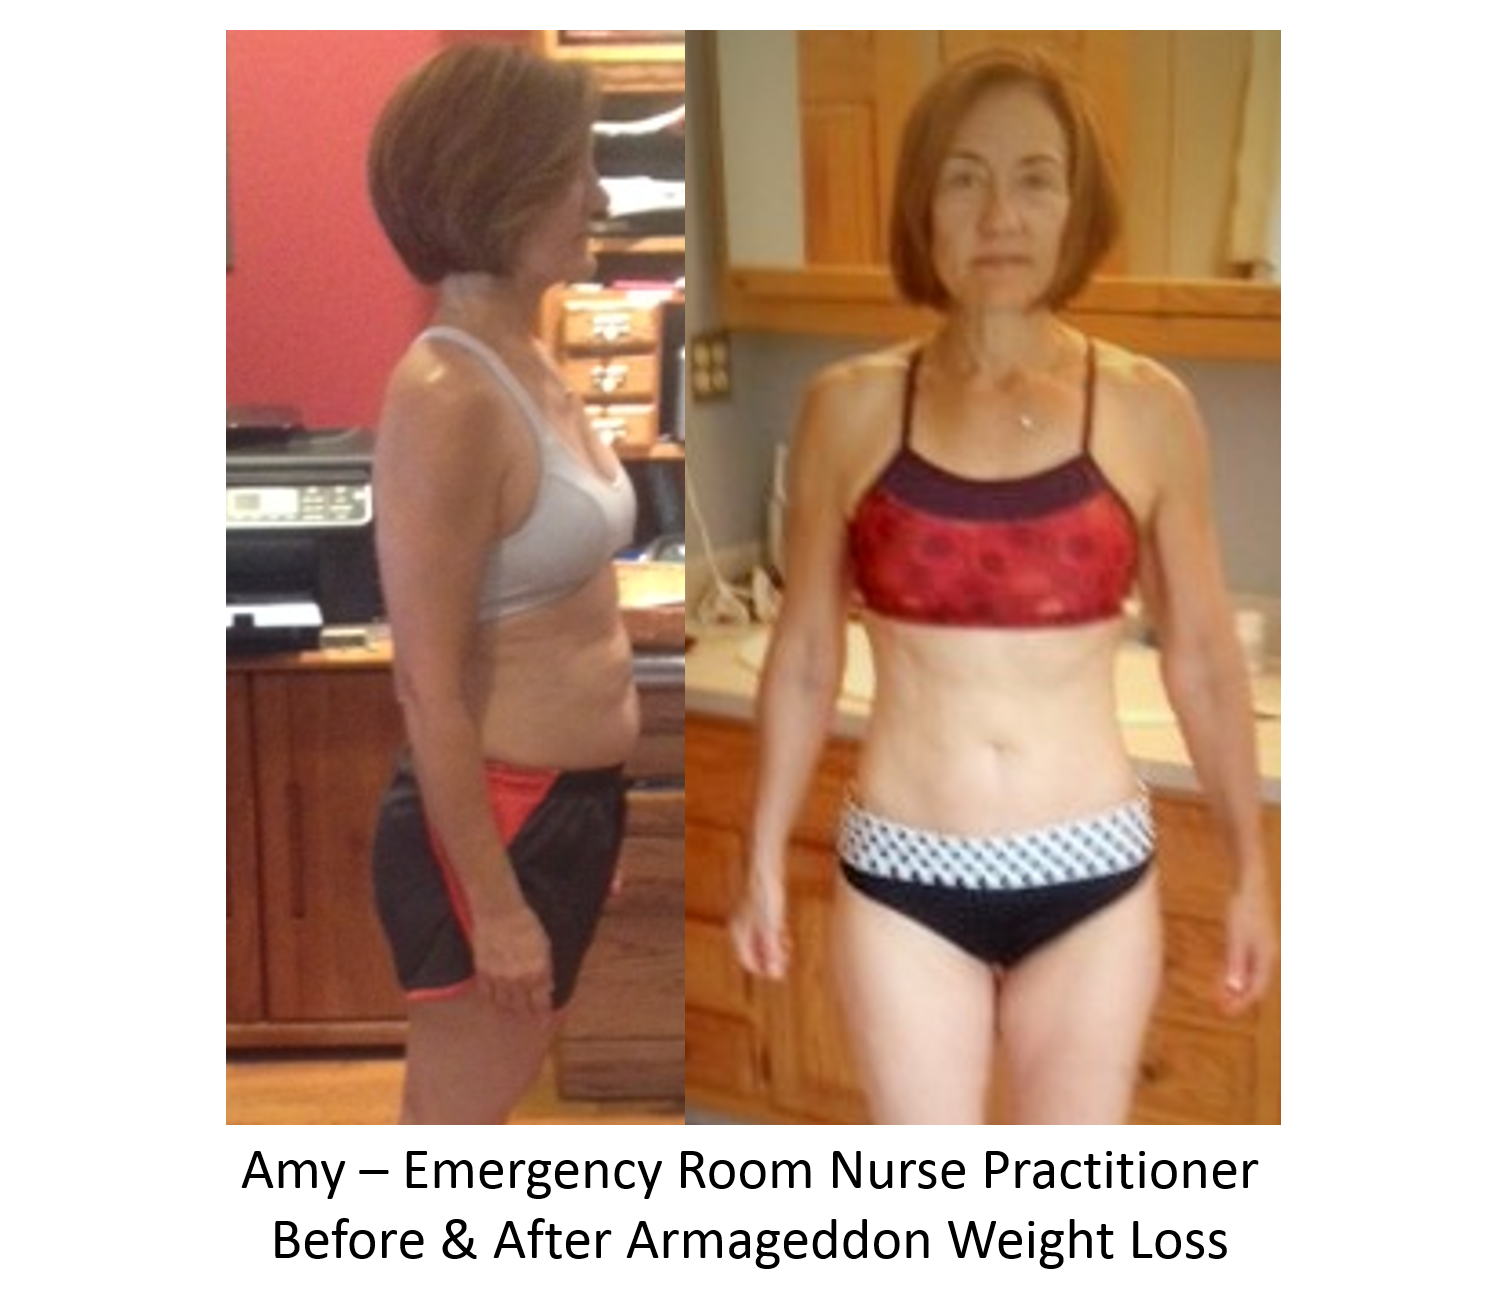 Amy - Nurse Practitioner - Before and After Armageddon Weight Loss - Best weight loss DVD for women - best exercise DVD - best cellulite removal - best muffin top removal - 12